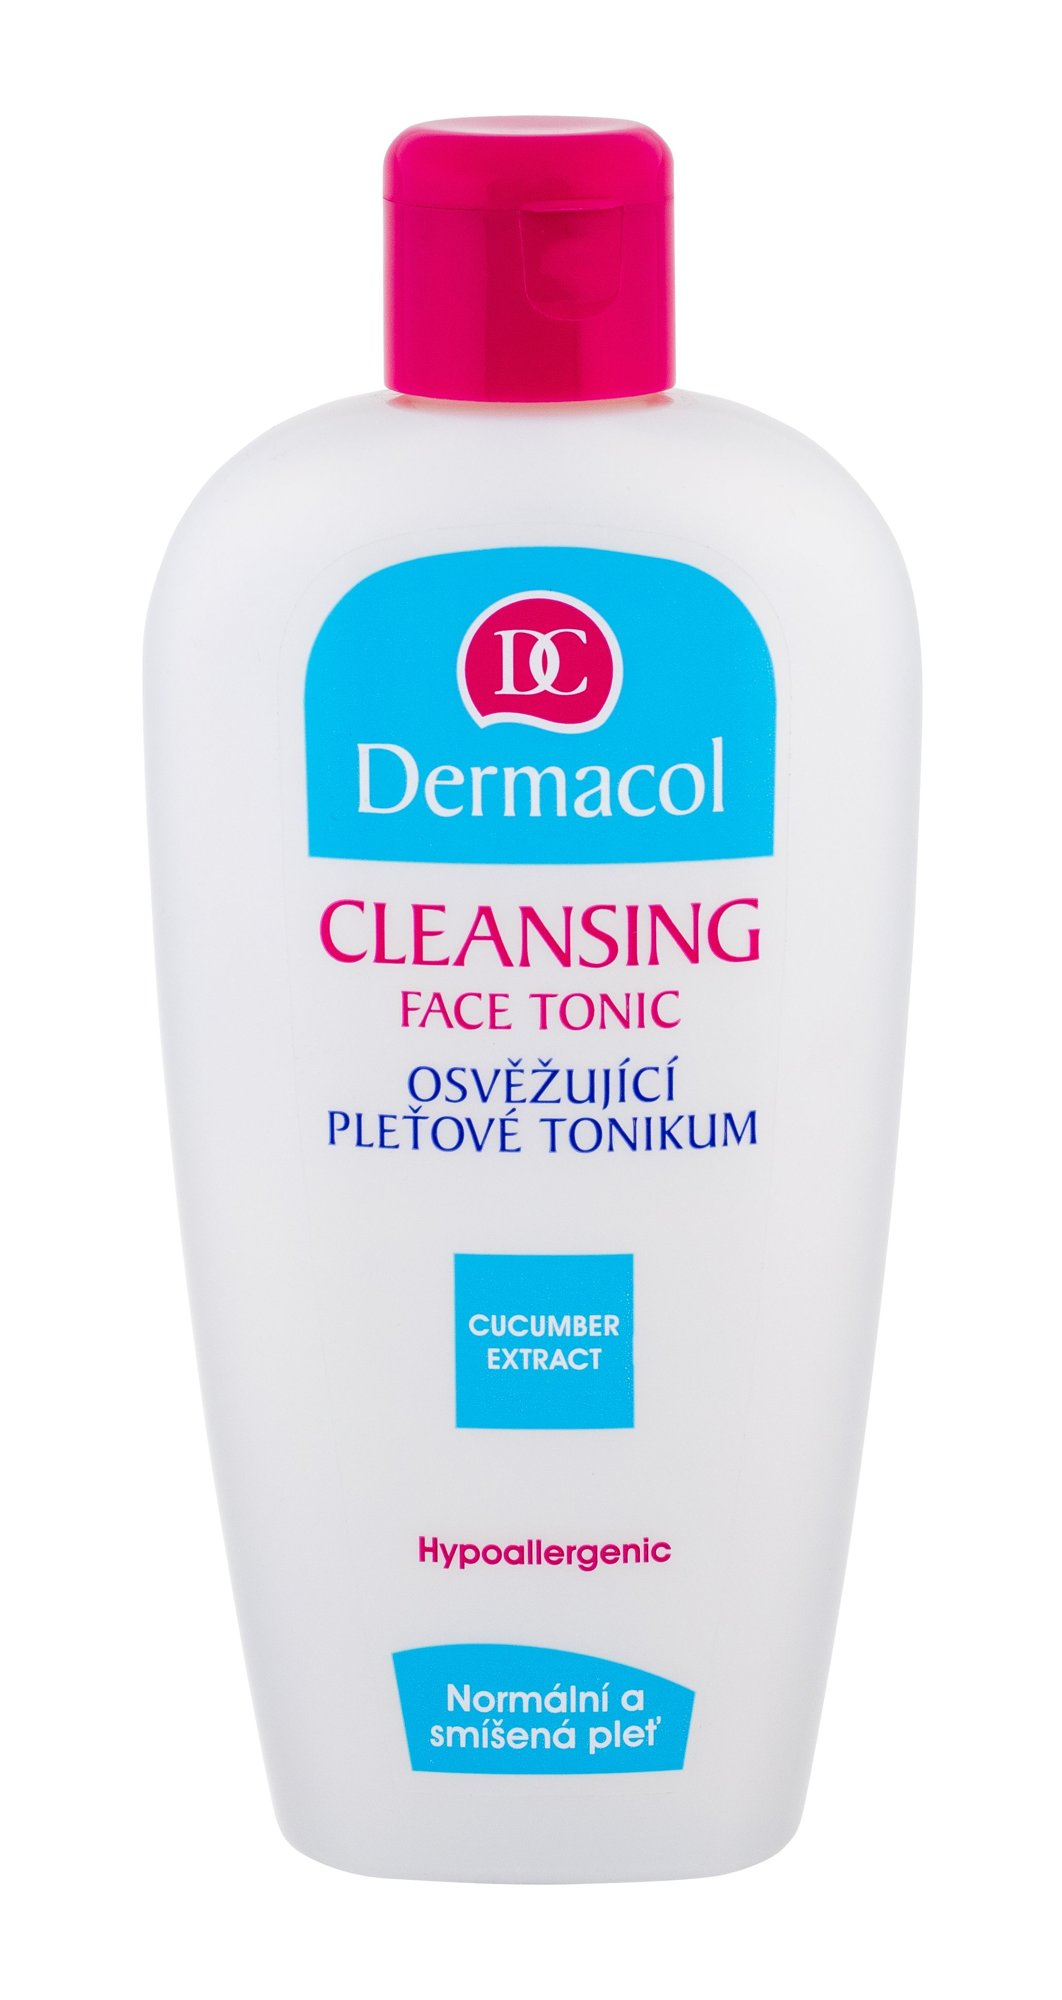 Dermacol Cleansing Face Tonic Cleansing Water 200ml